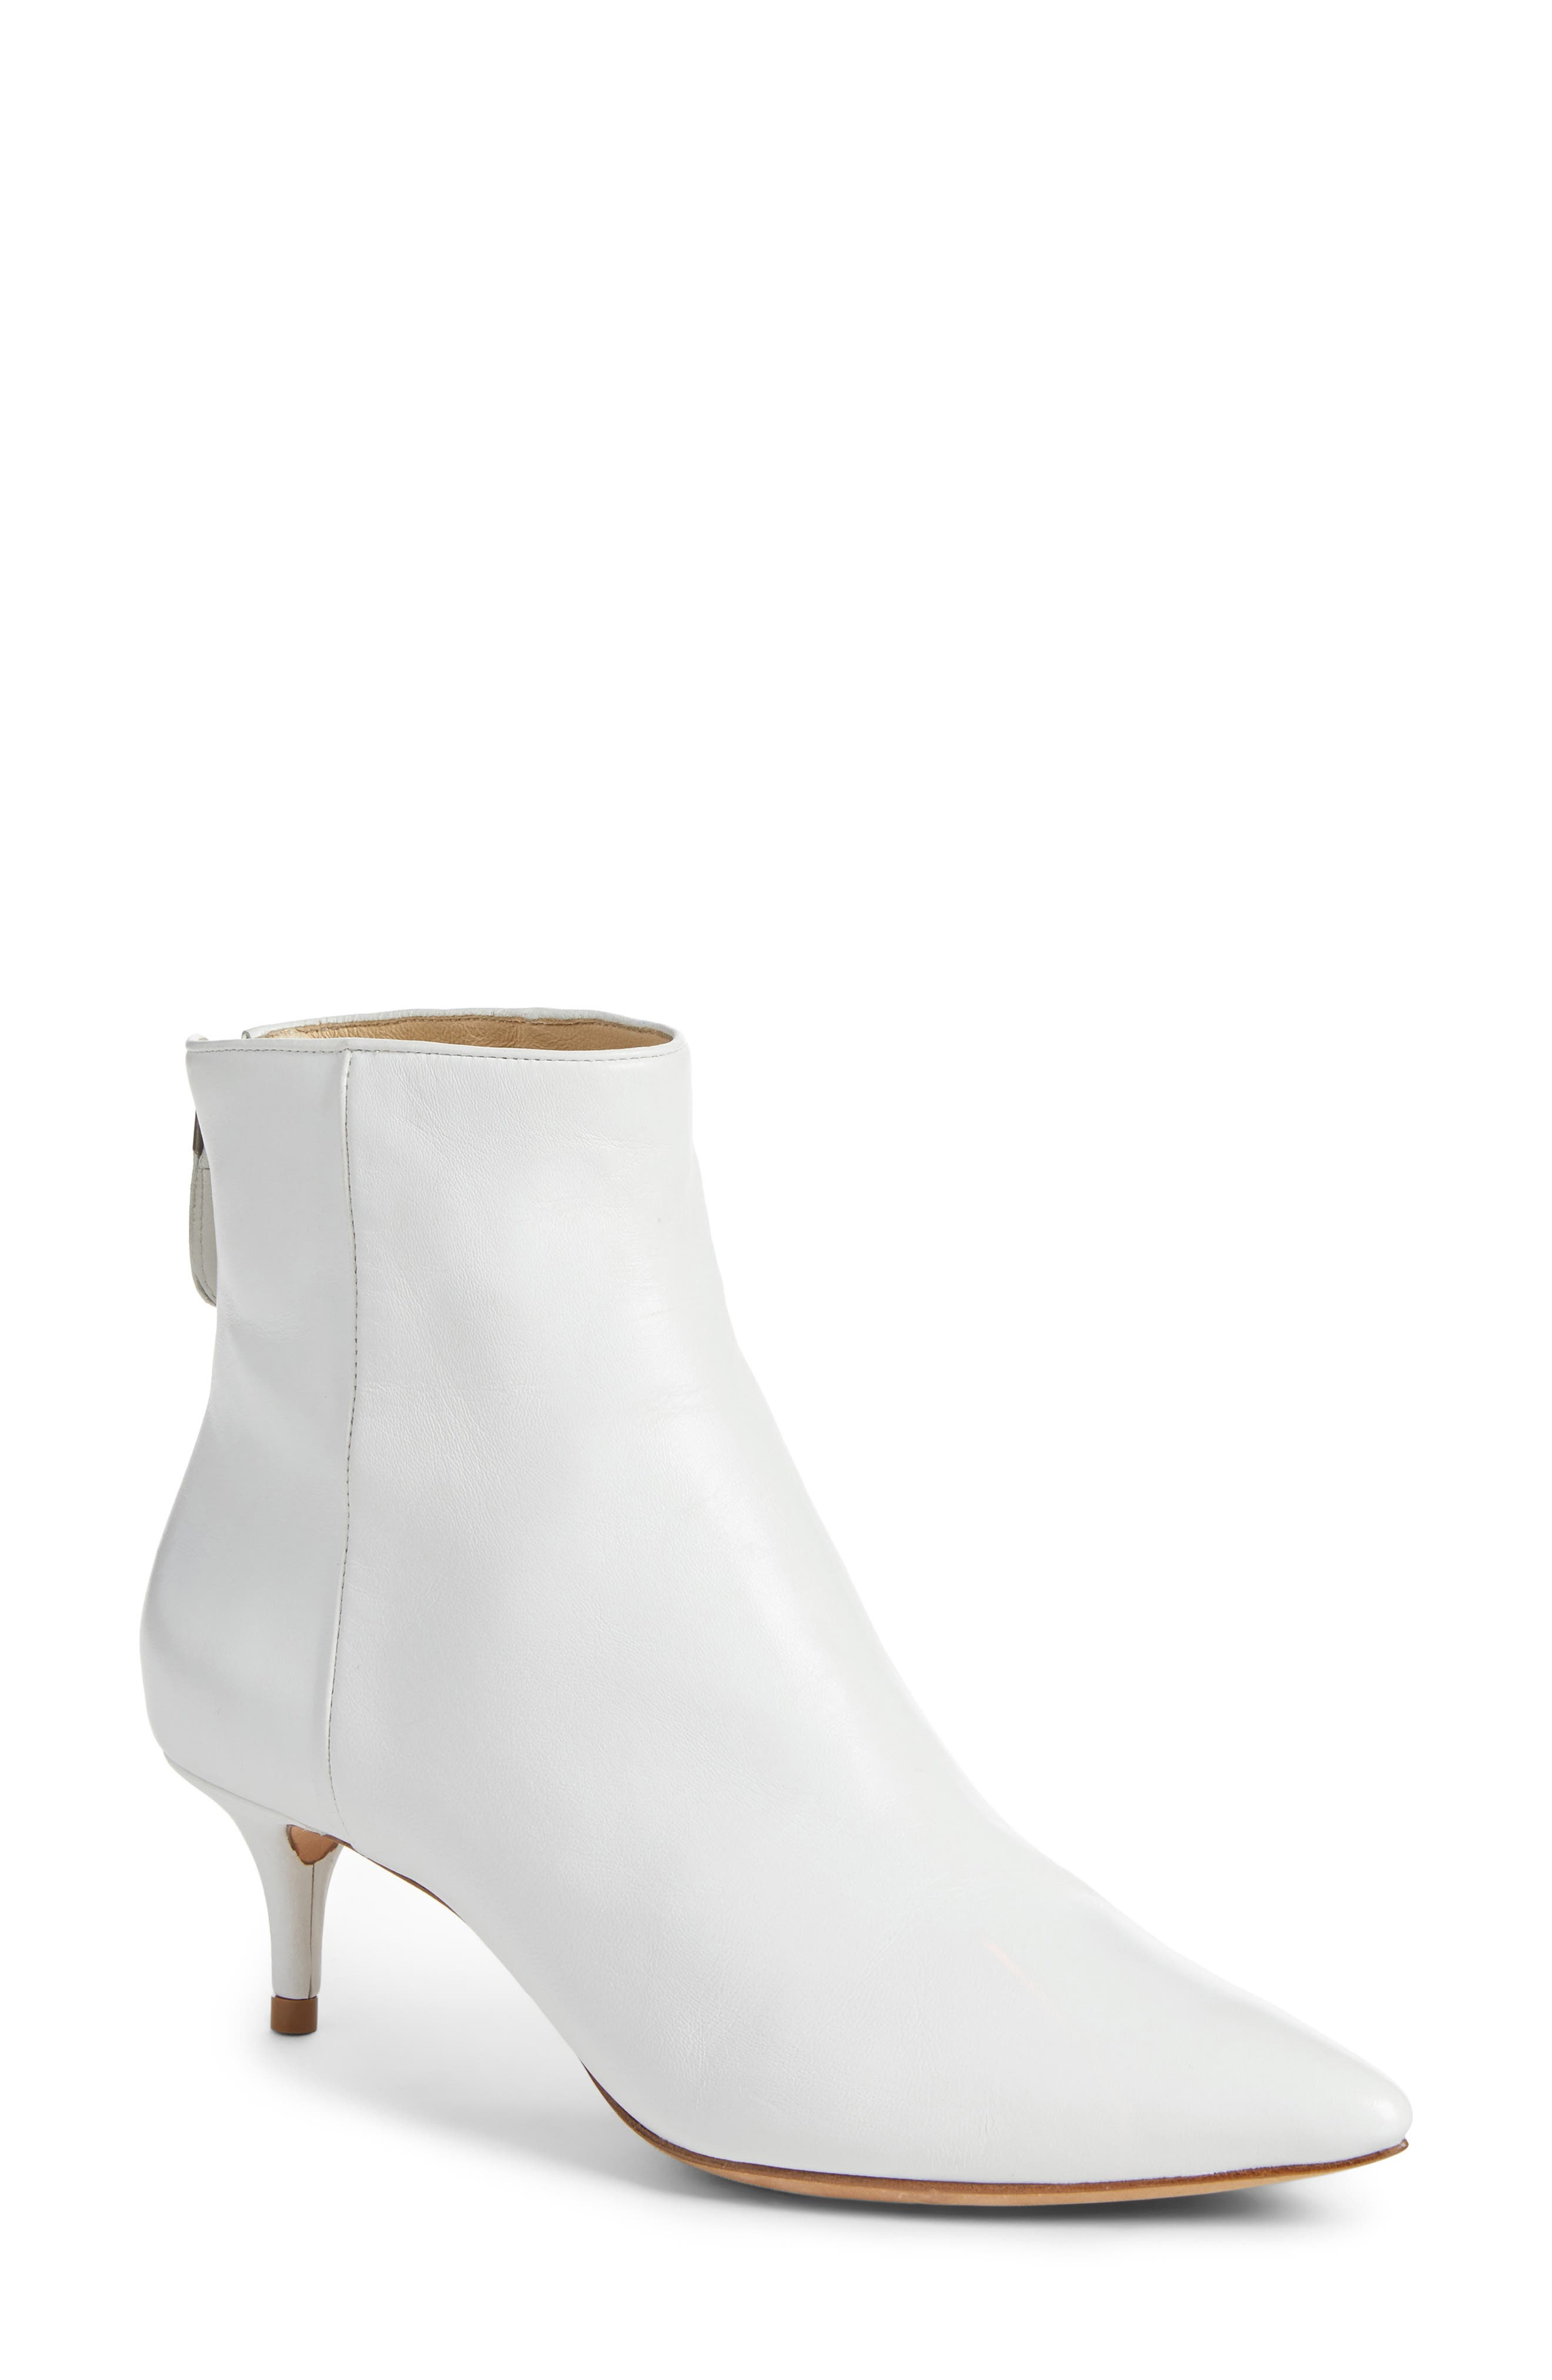 Kittie Pointy Toe Bootie,                             Main thumbnail 1, color,                             WHITE